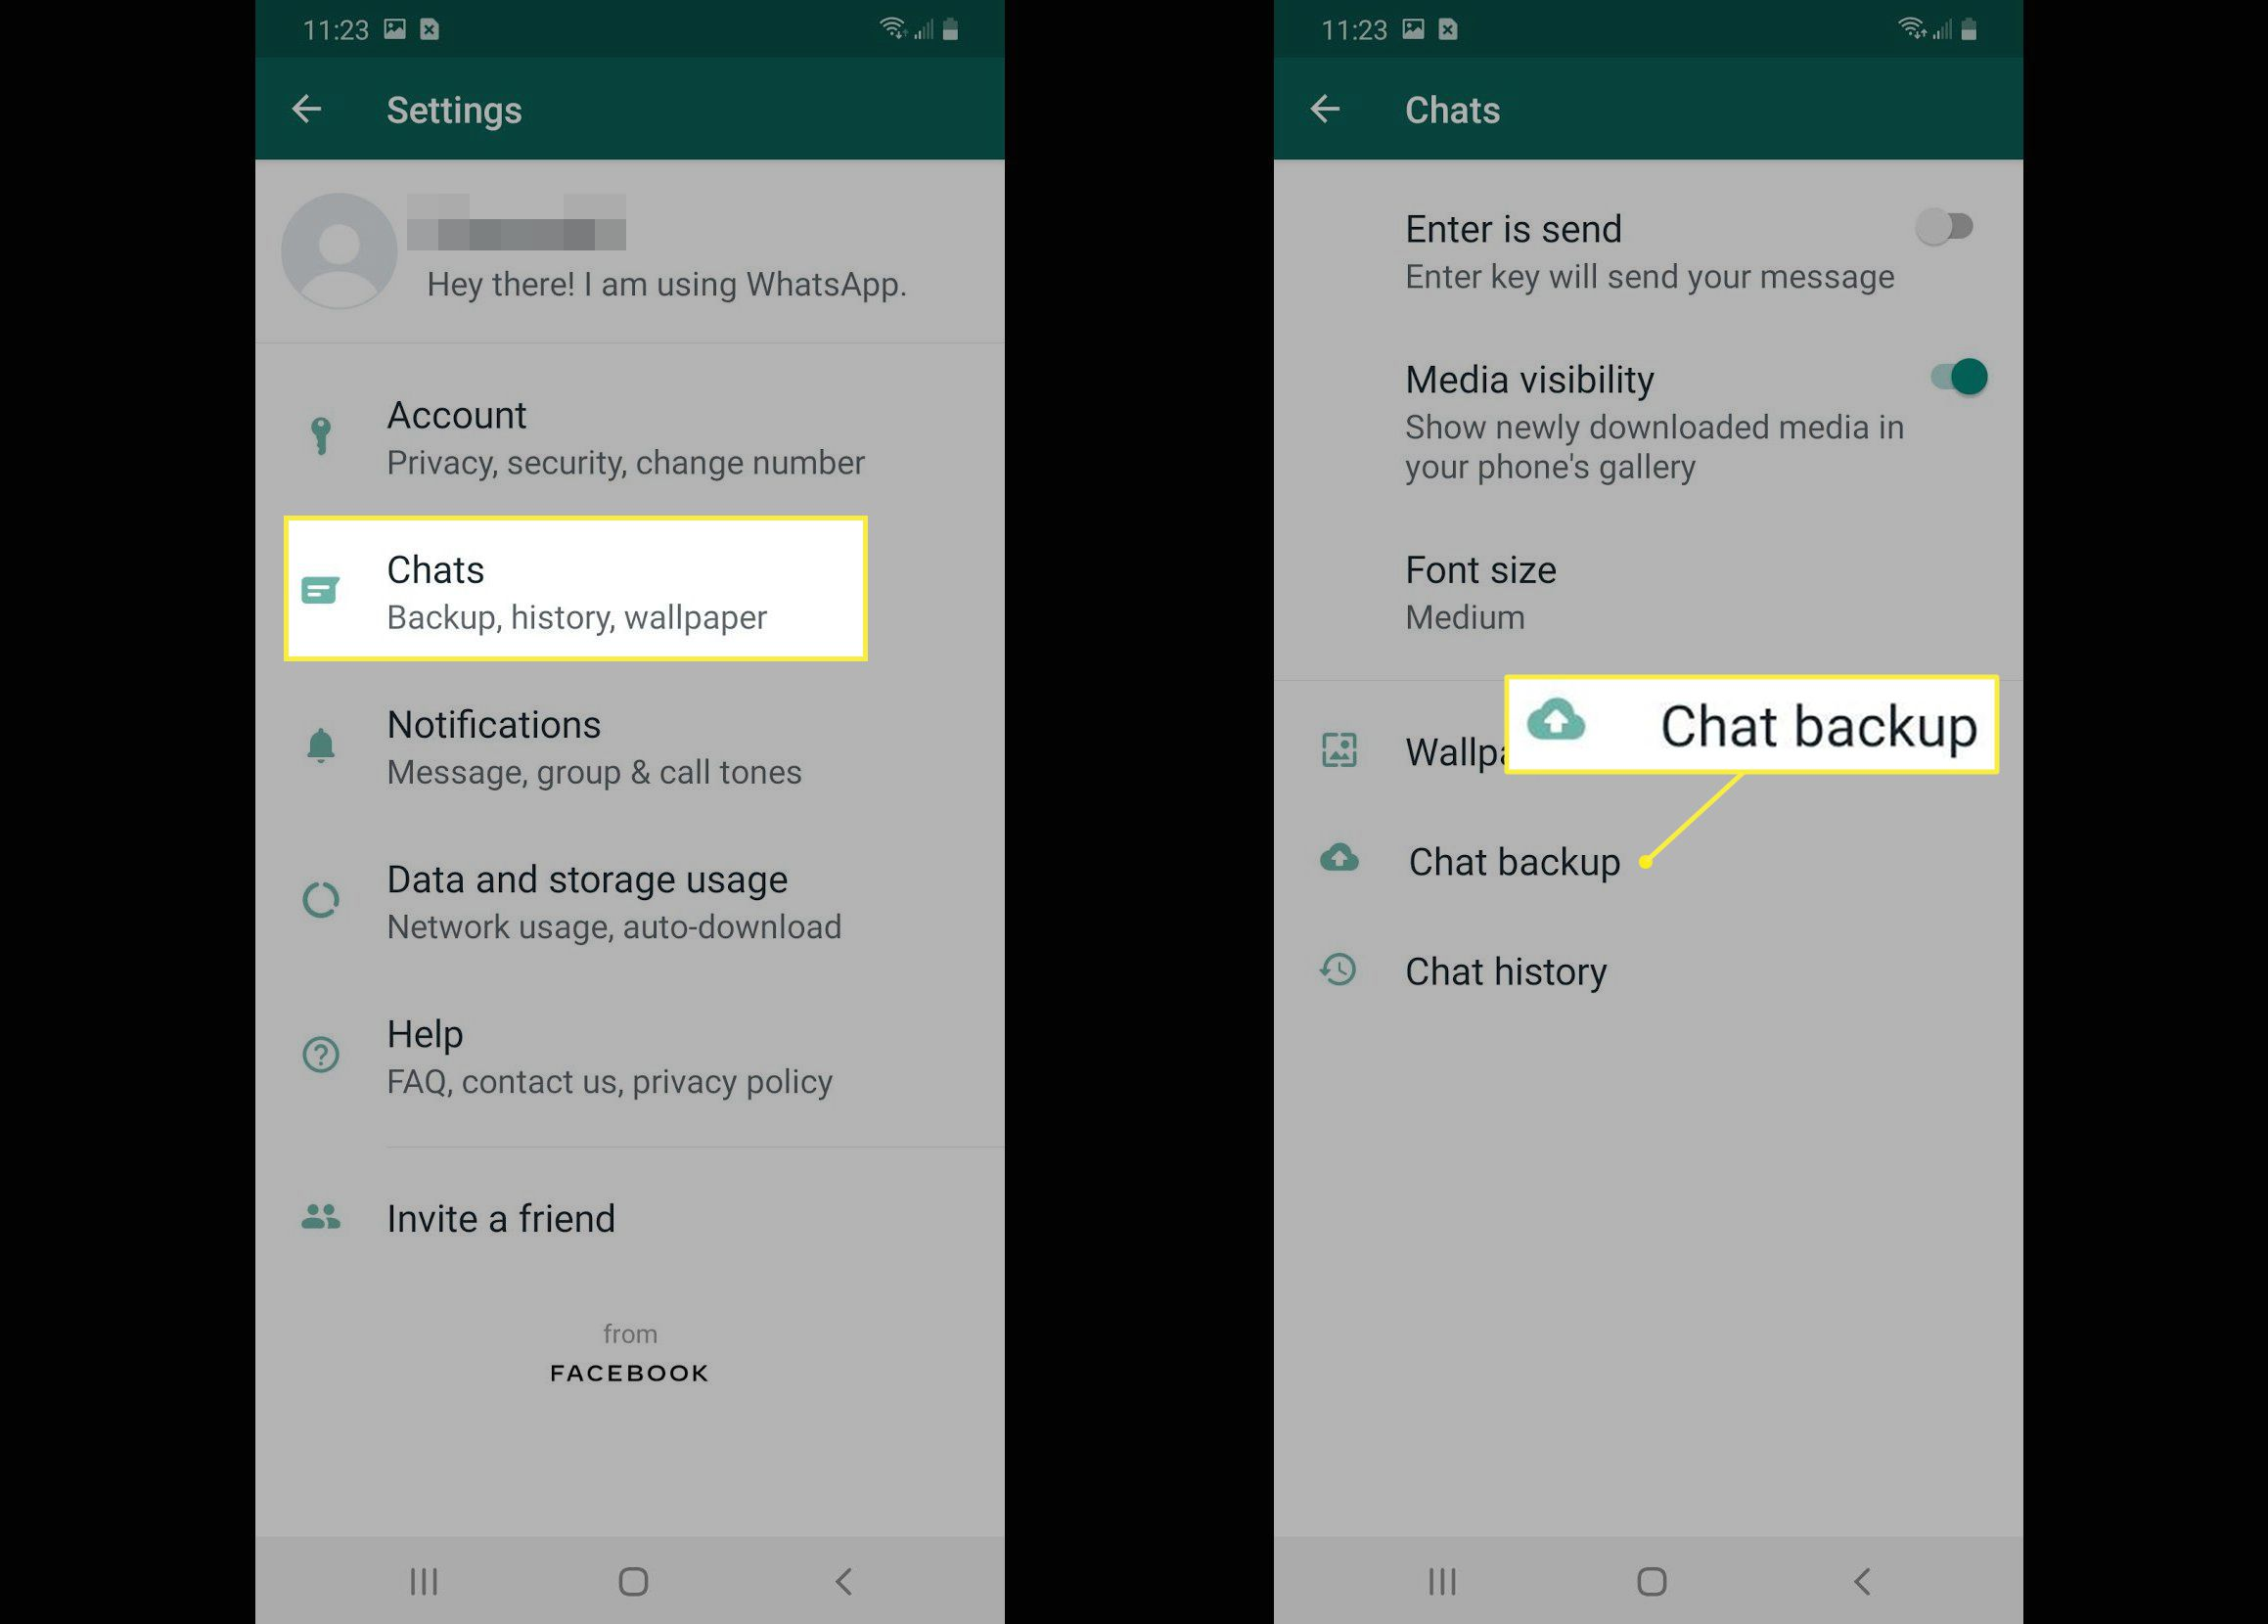 Chat backup on Android